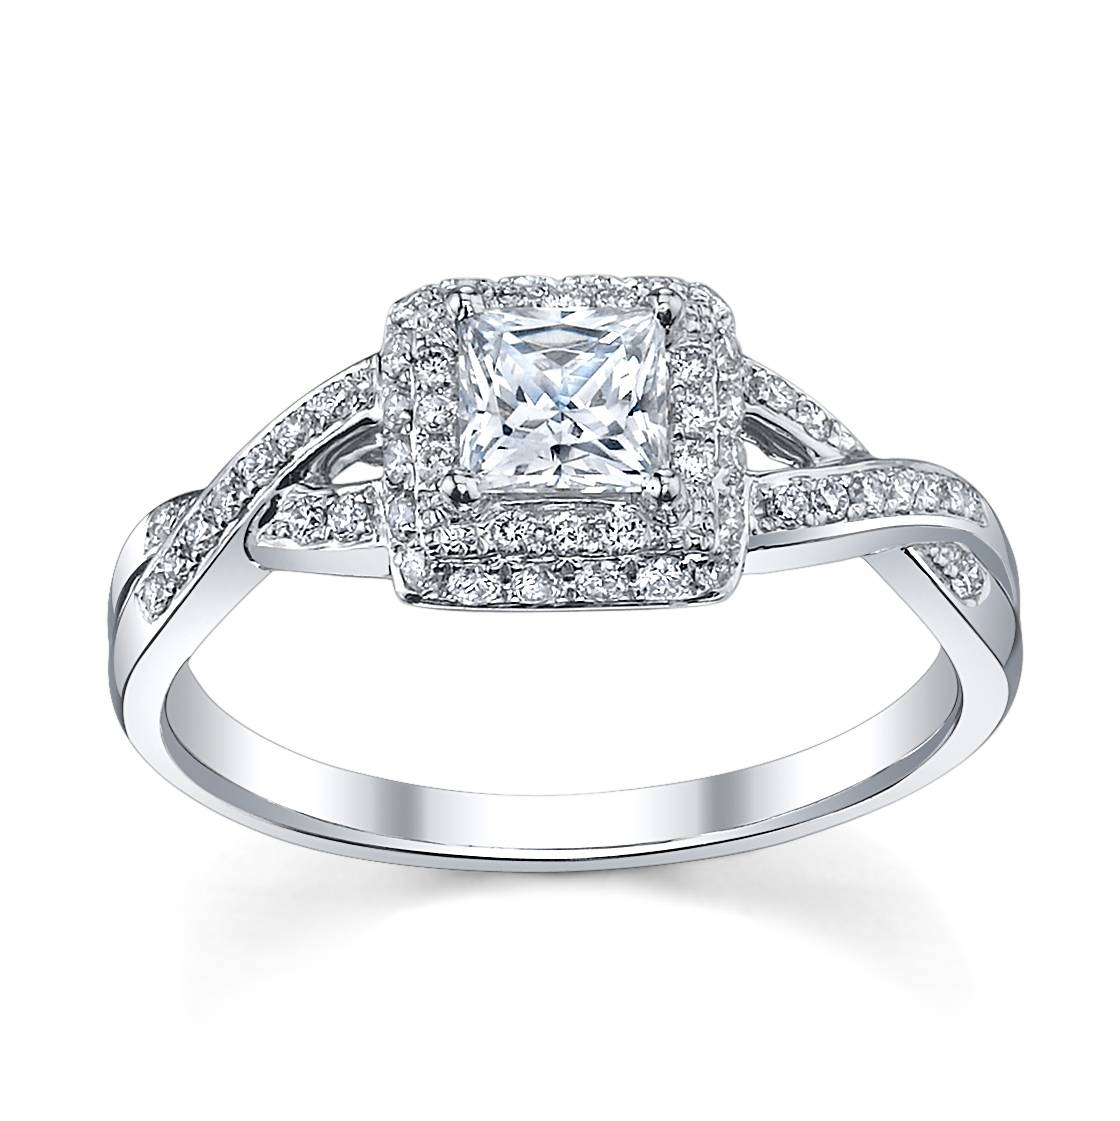 Princess Cut Wedding Rings For Classy Look | Interior Decorations Intended For Most Up To Date Princess Cut Anniversary Rings (View 21 of 25)